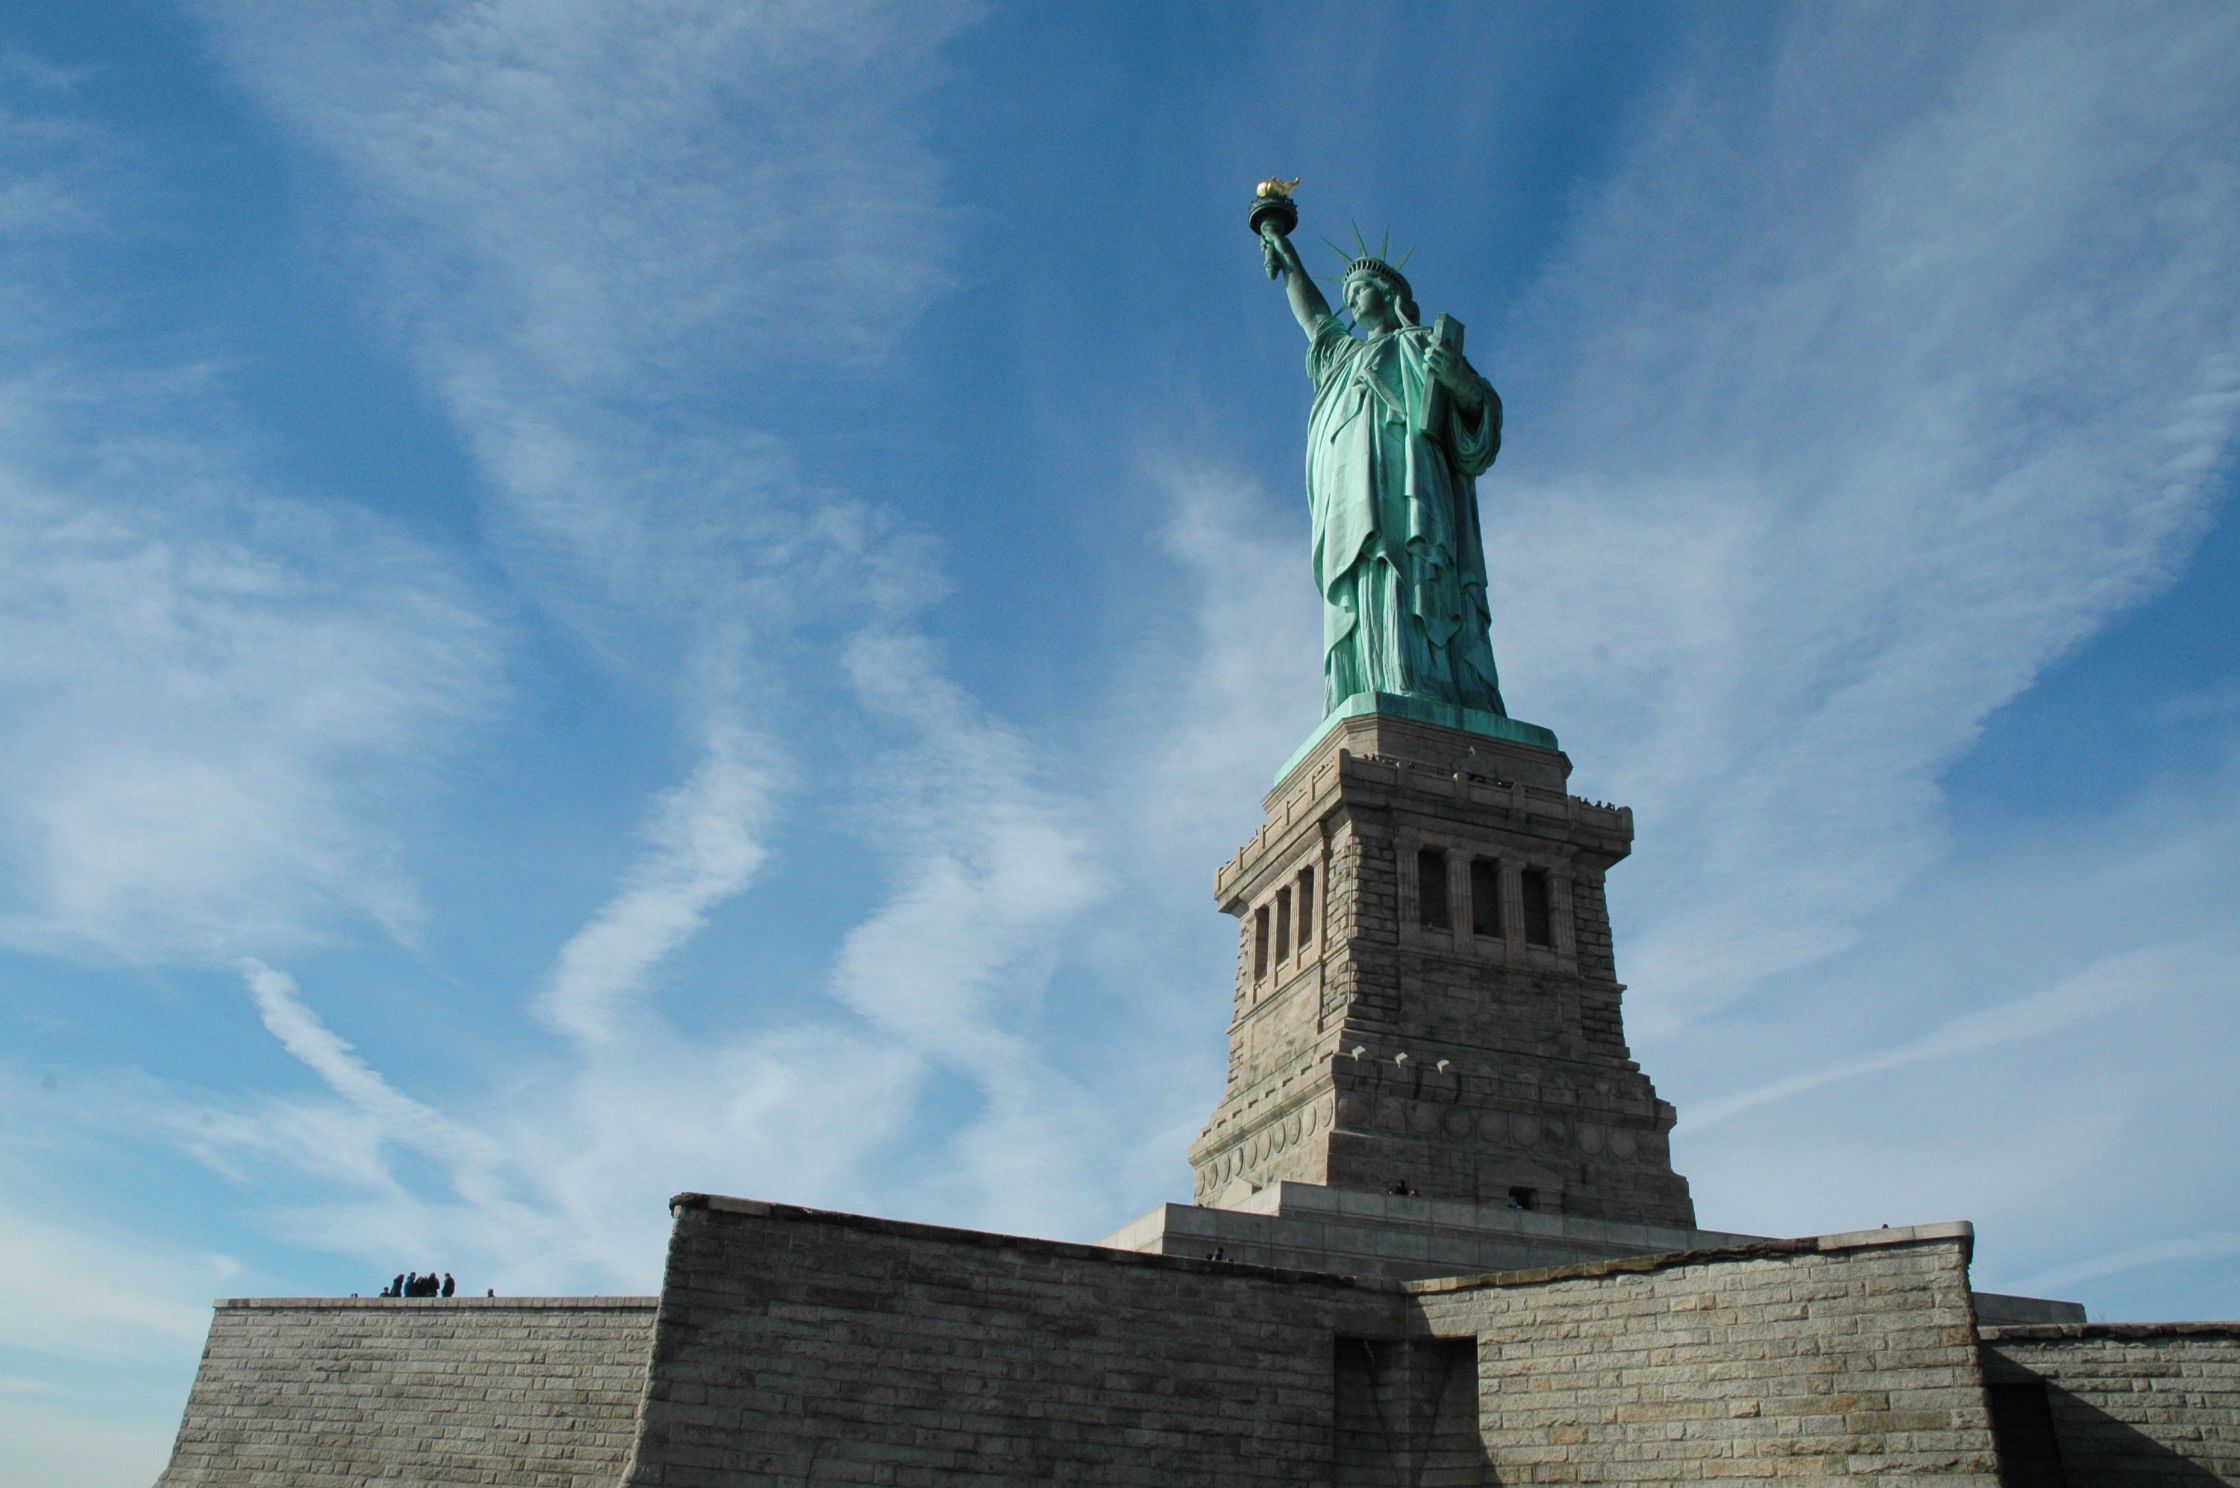 10 Nyc Attractions In 1 Day With The New York Pass Full